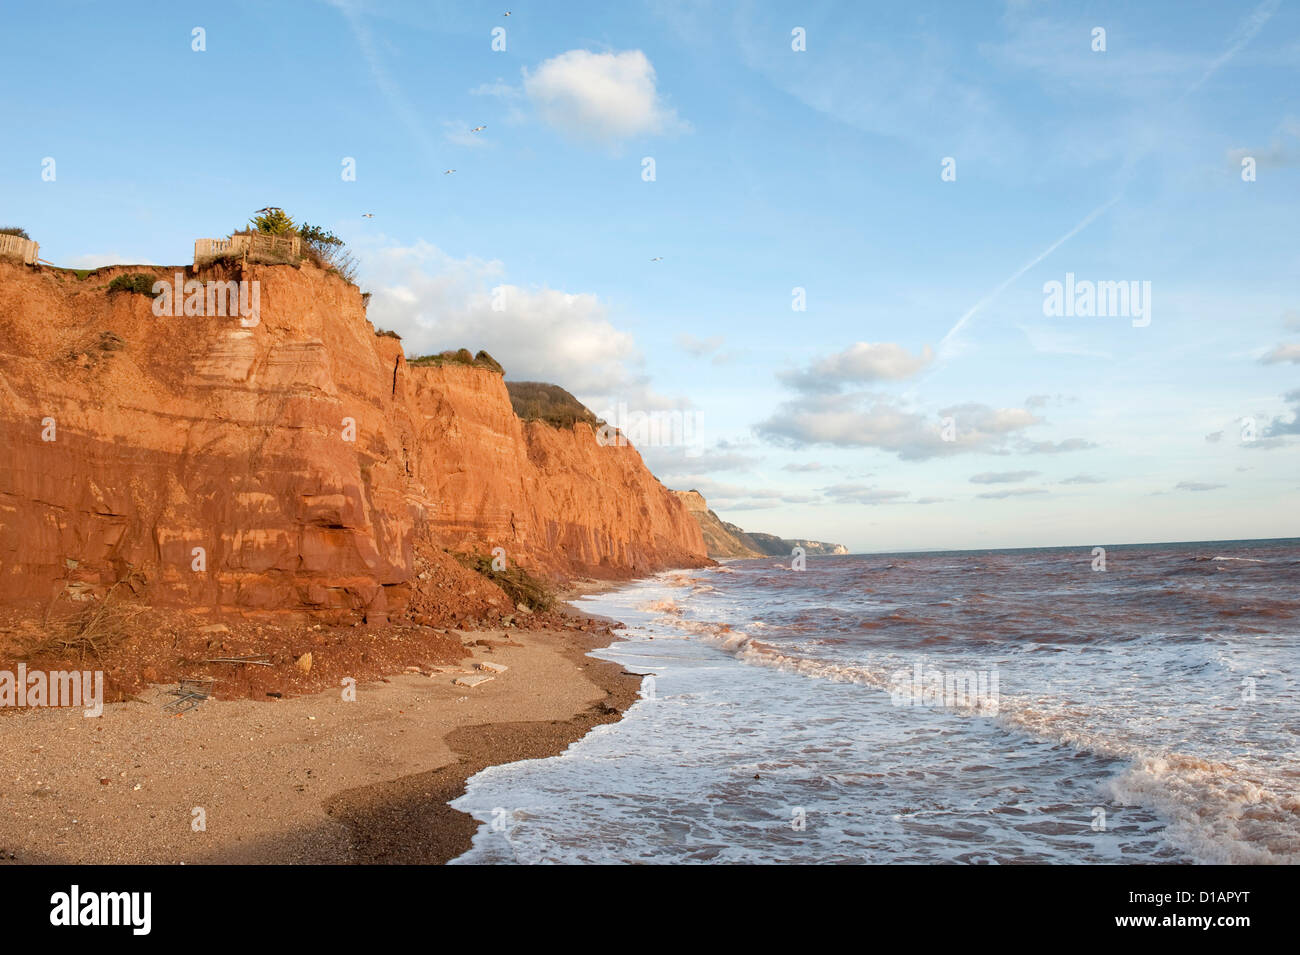 East Cliffs at Sidmouth in Devon with severe coastal erosion and landslips - Stock Image